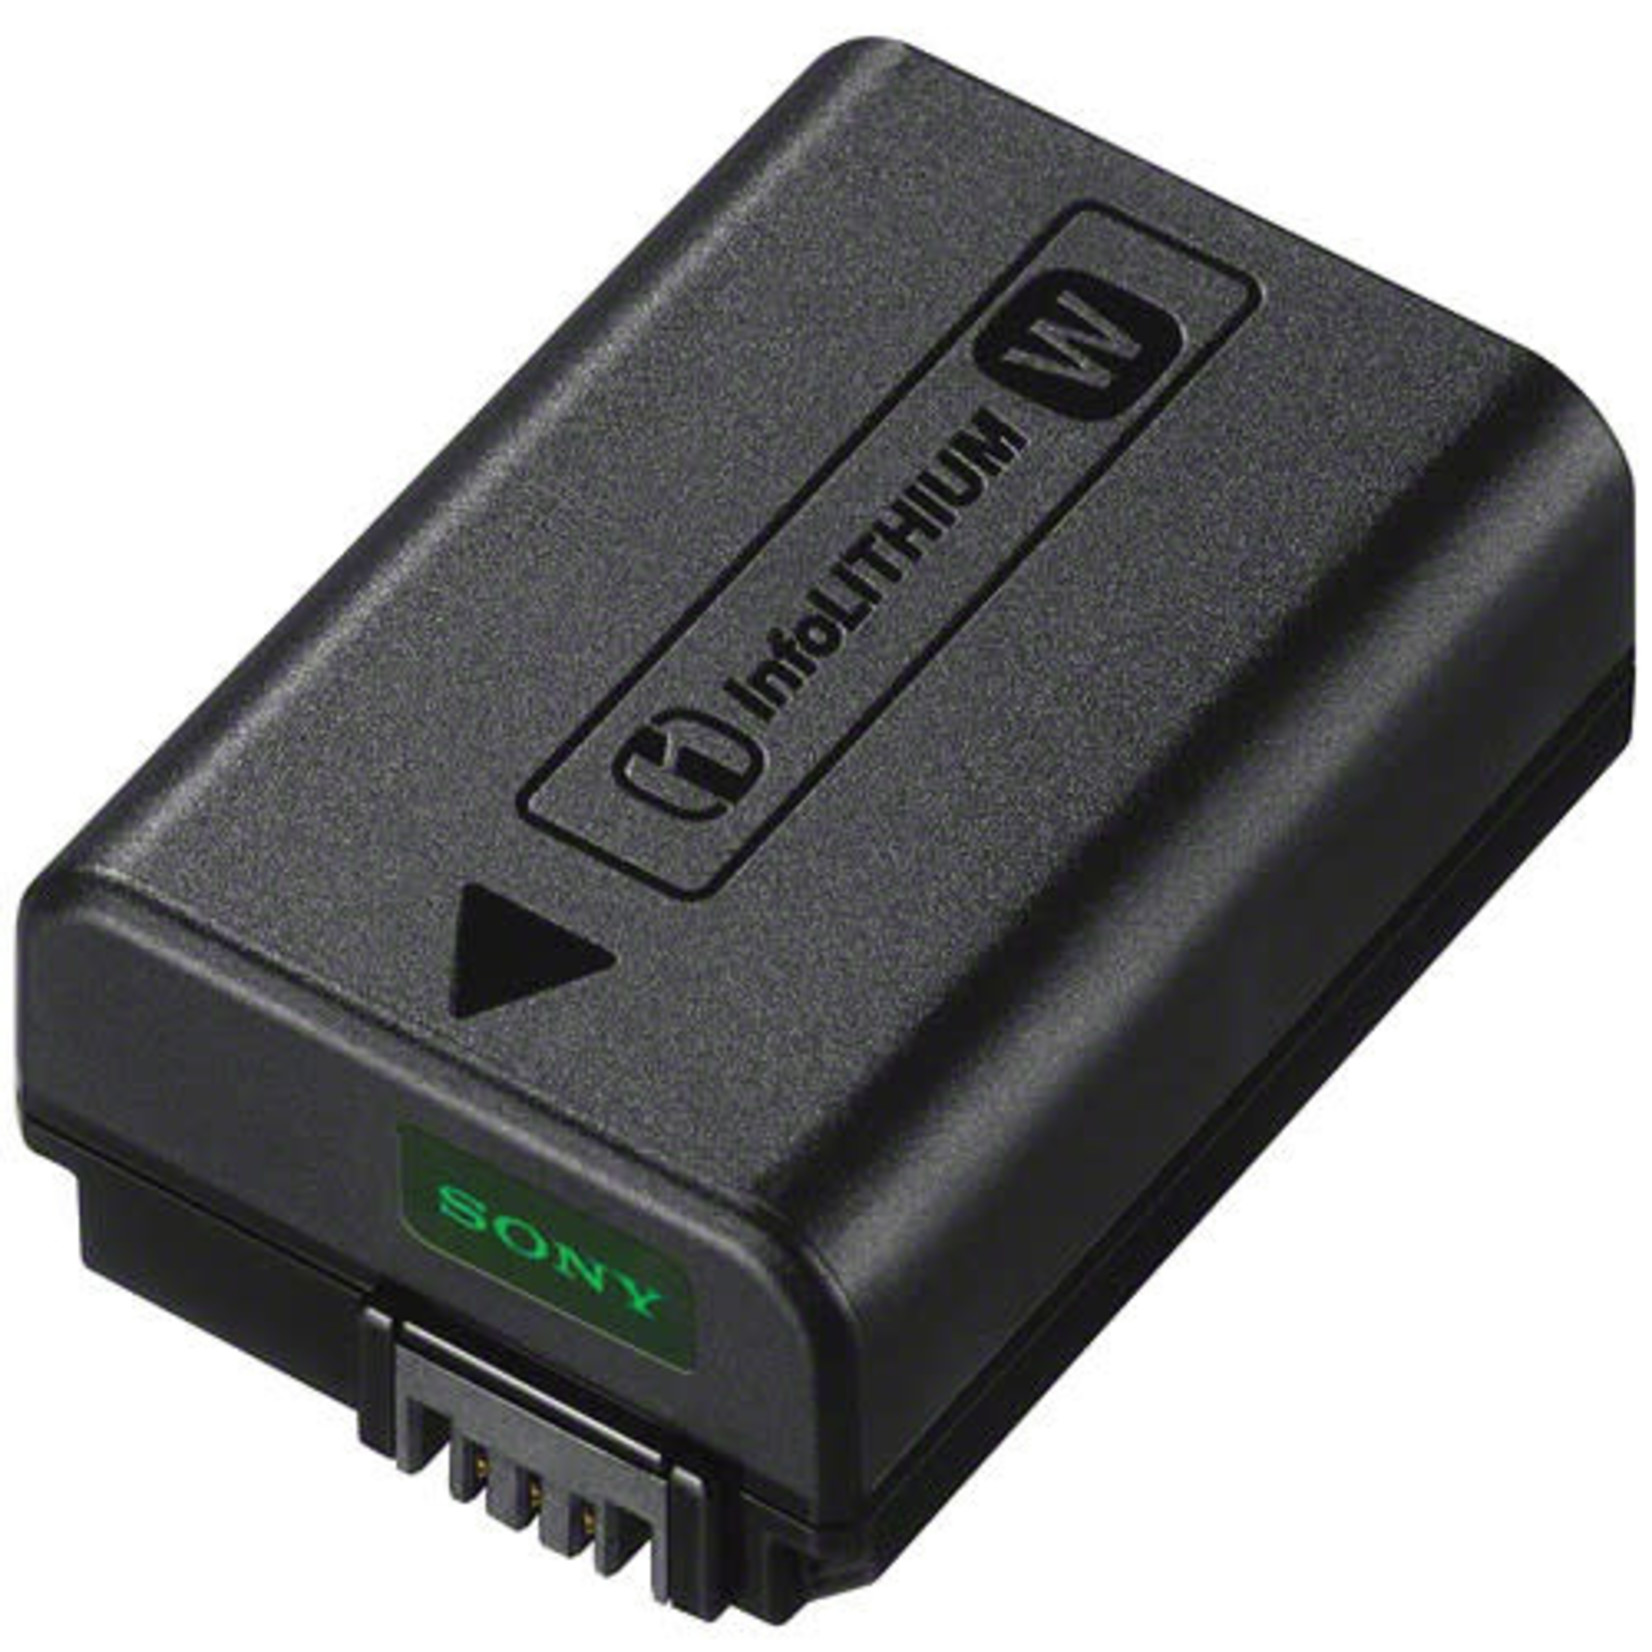 Sony Sony NP-FW50 Lithium-Ion Rechargeable Battery